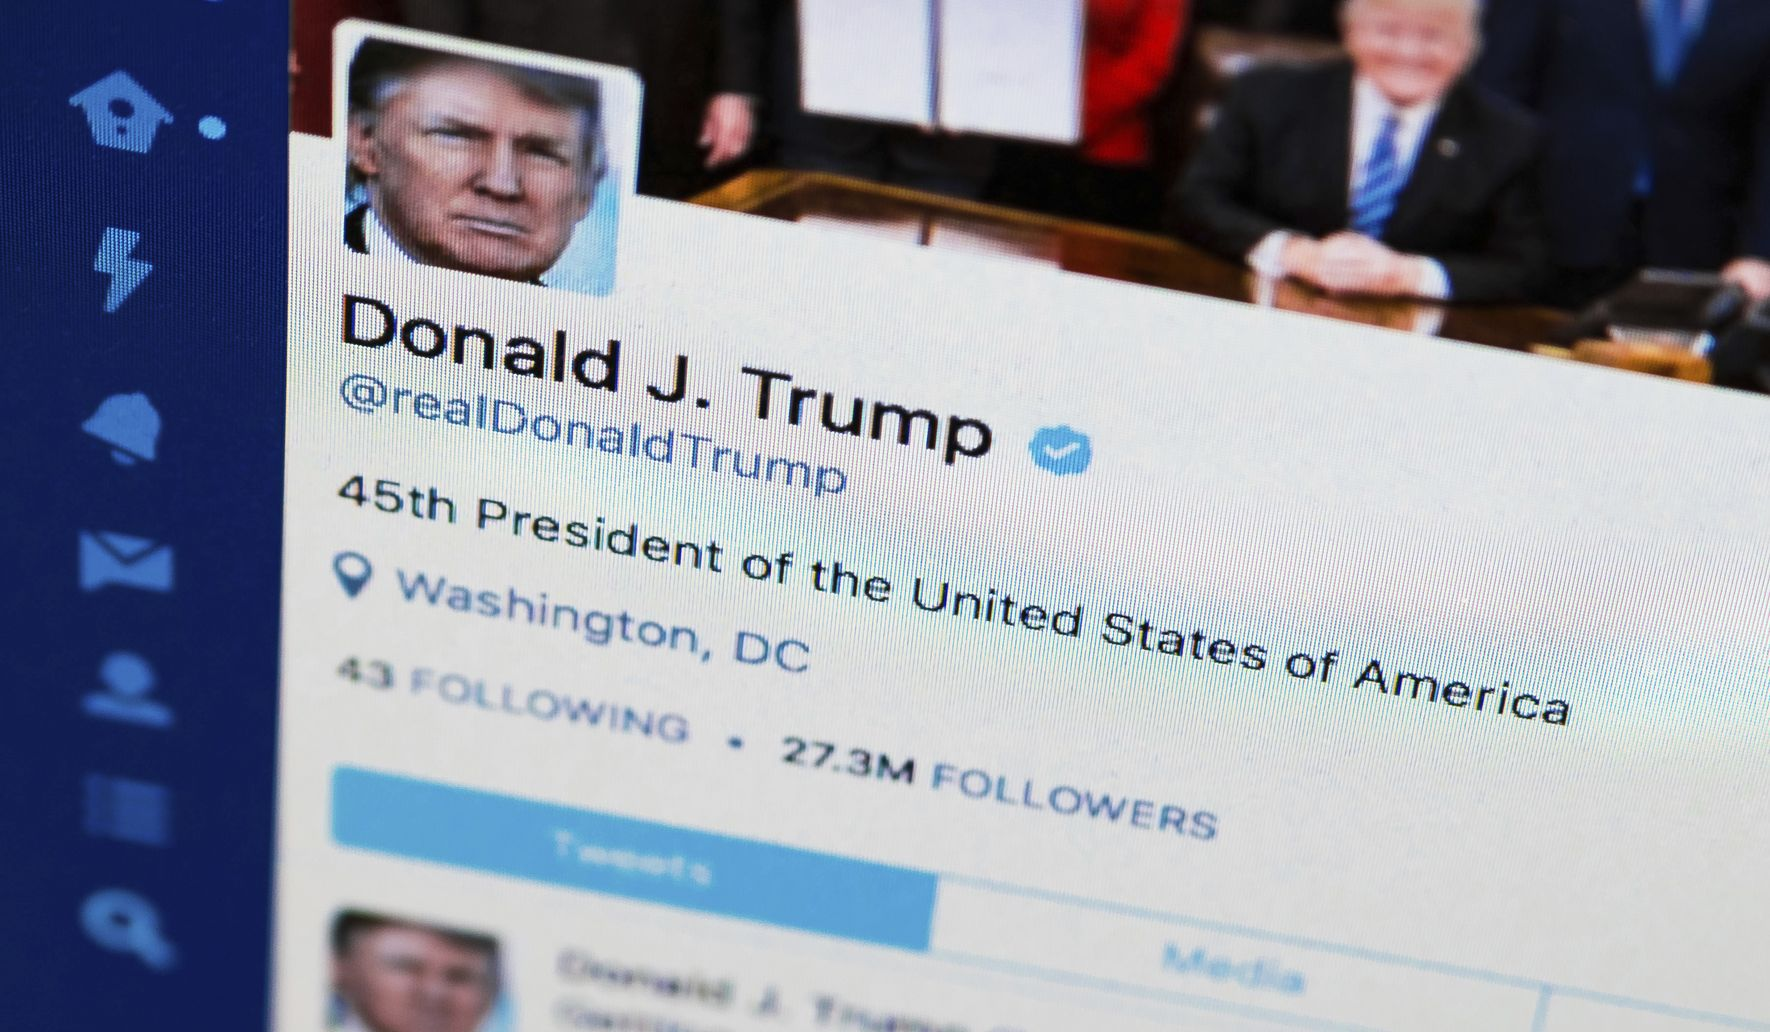 Donald Trump tweeting nearly twice as much as at start of his presidency: Report